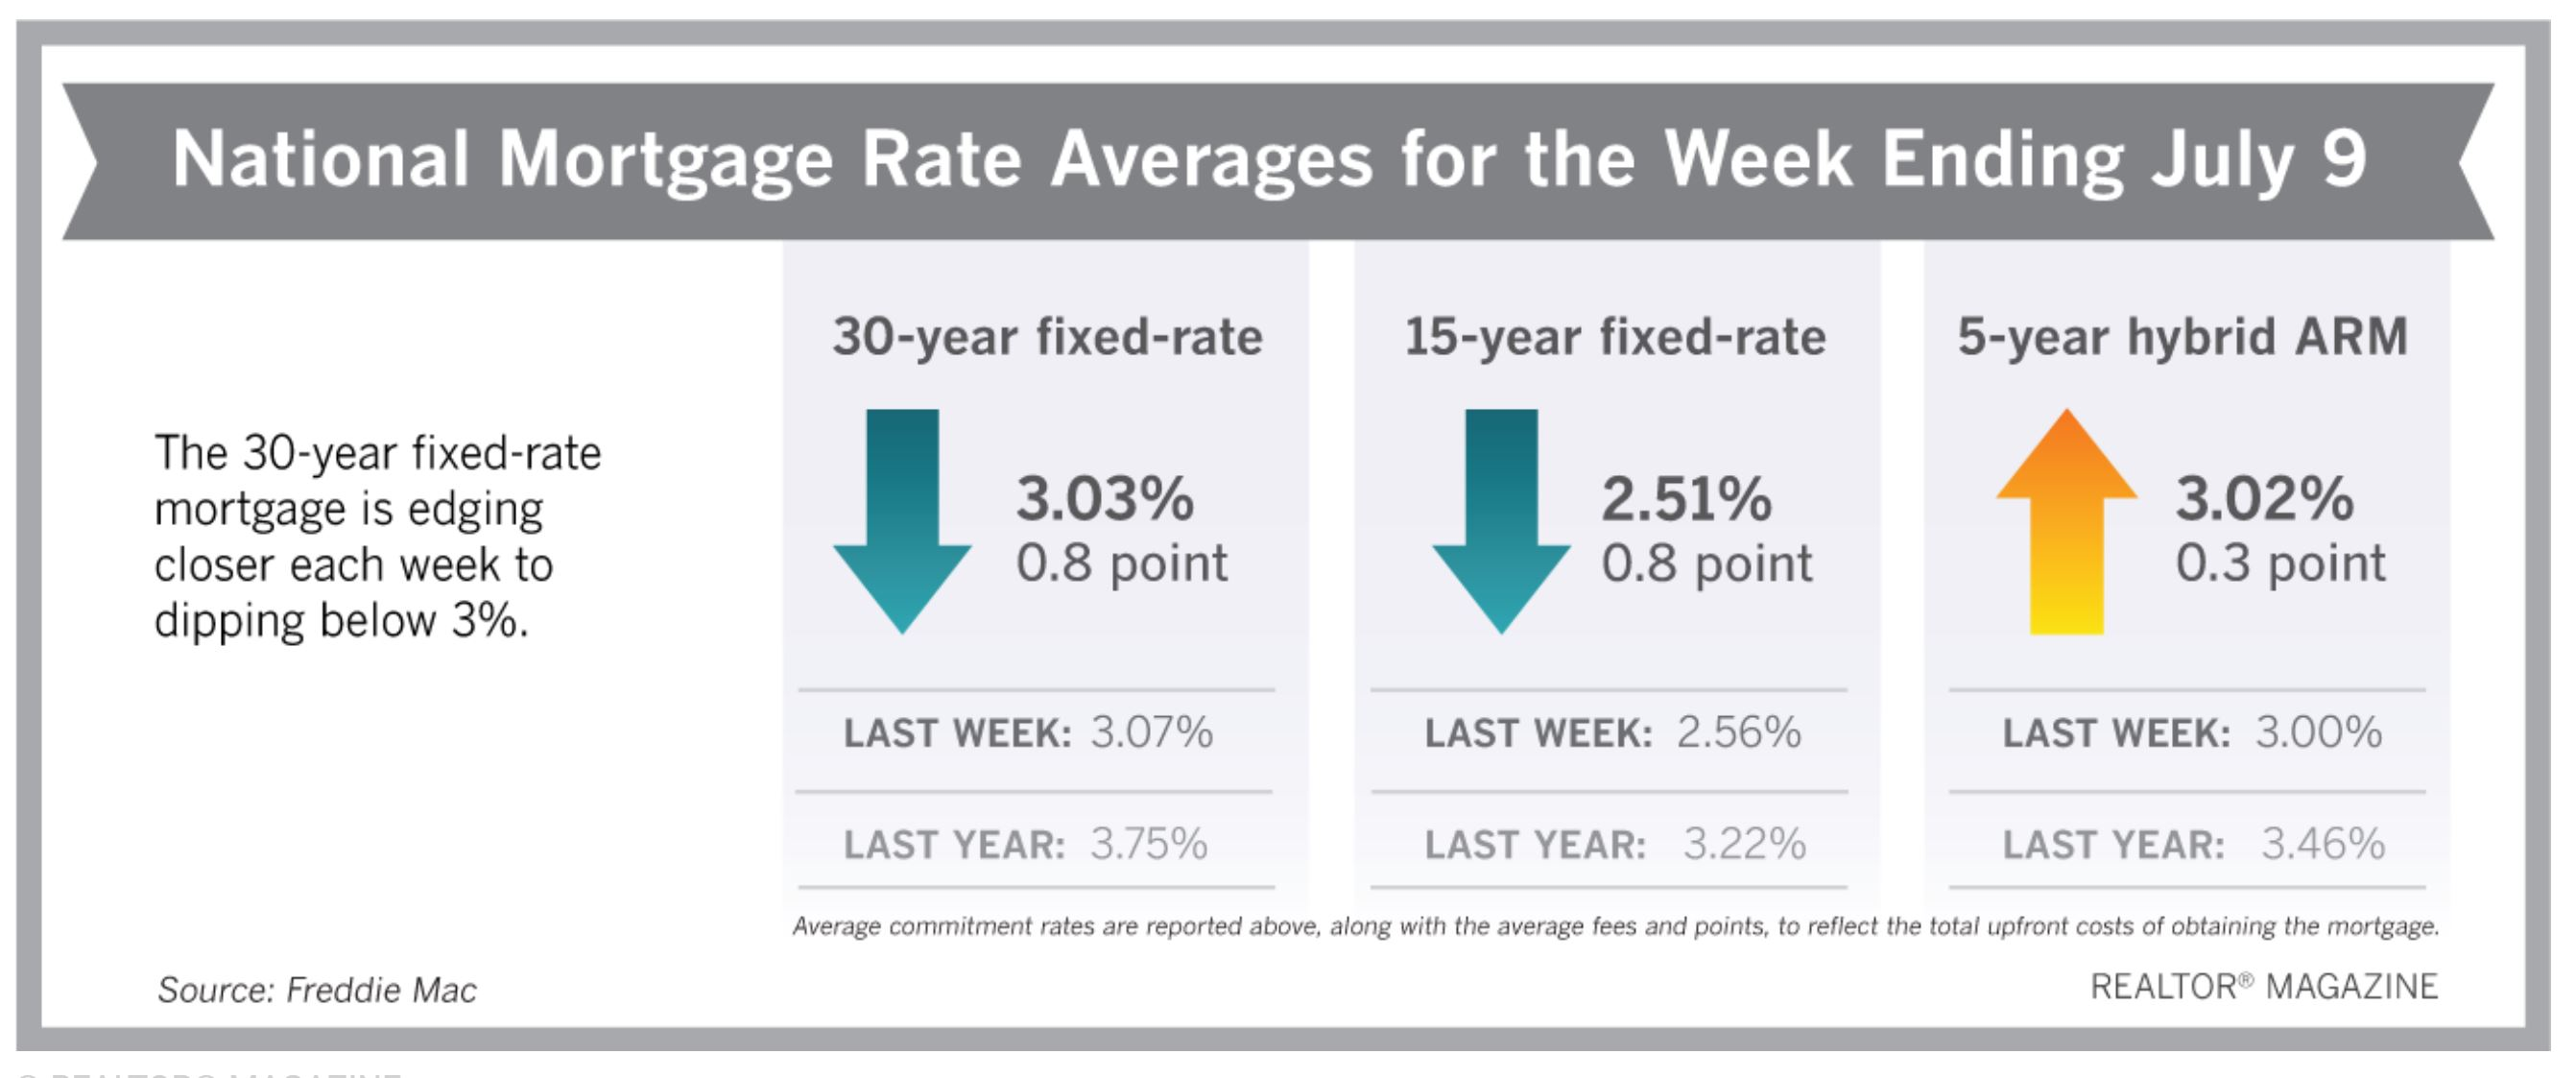 Realtor Magazine 2020 07 11 - National Average Mortgage rates Mid July after the worst of the COVID-19 Coronavirus pandemic Hoey Team eXp Realty